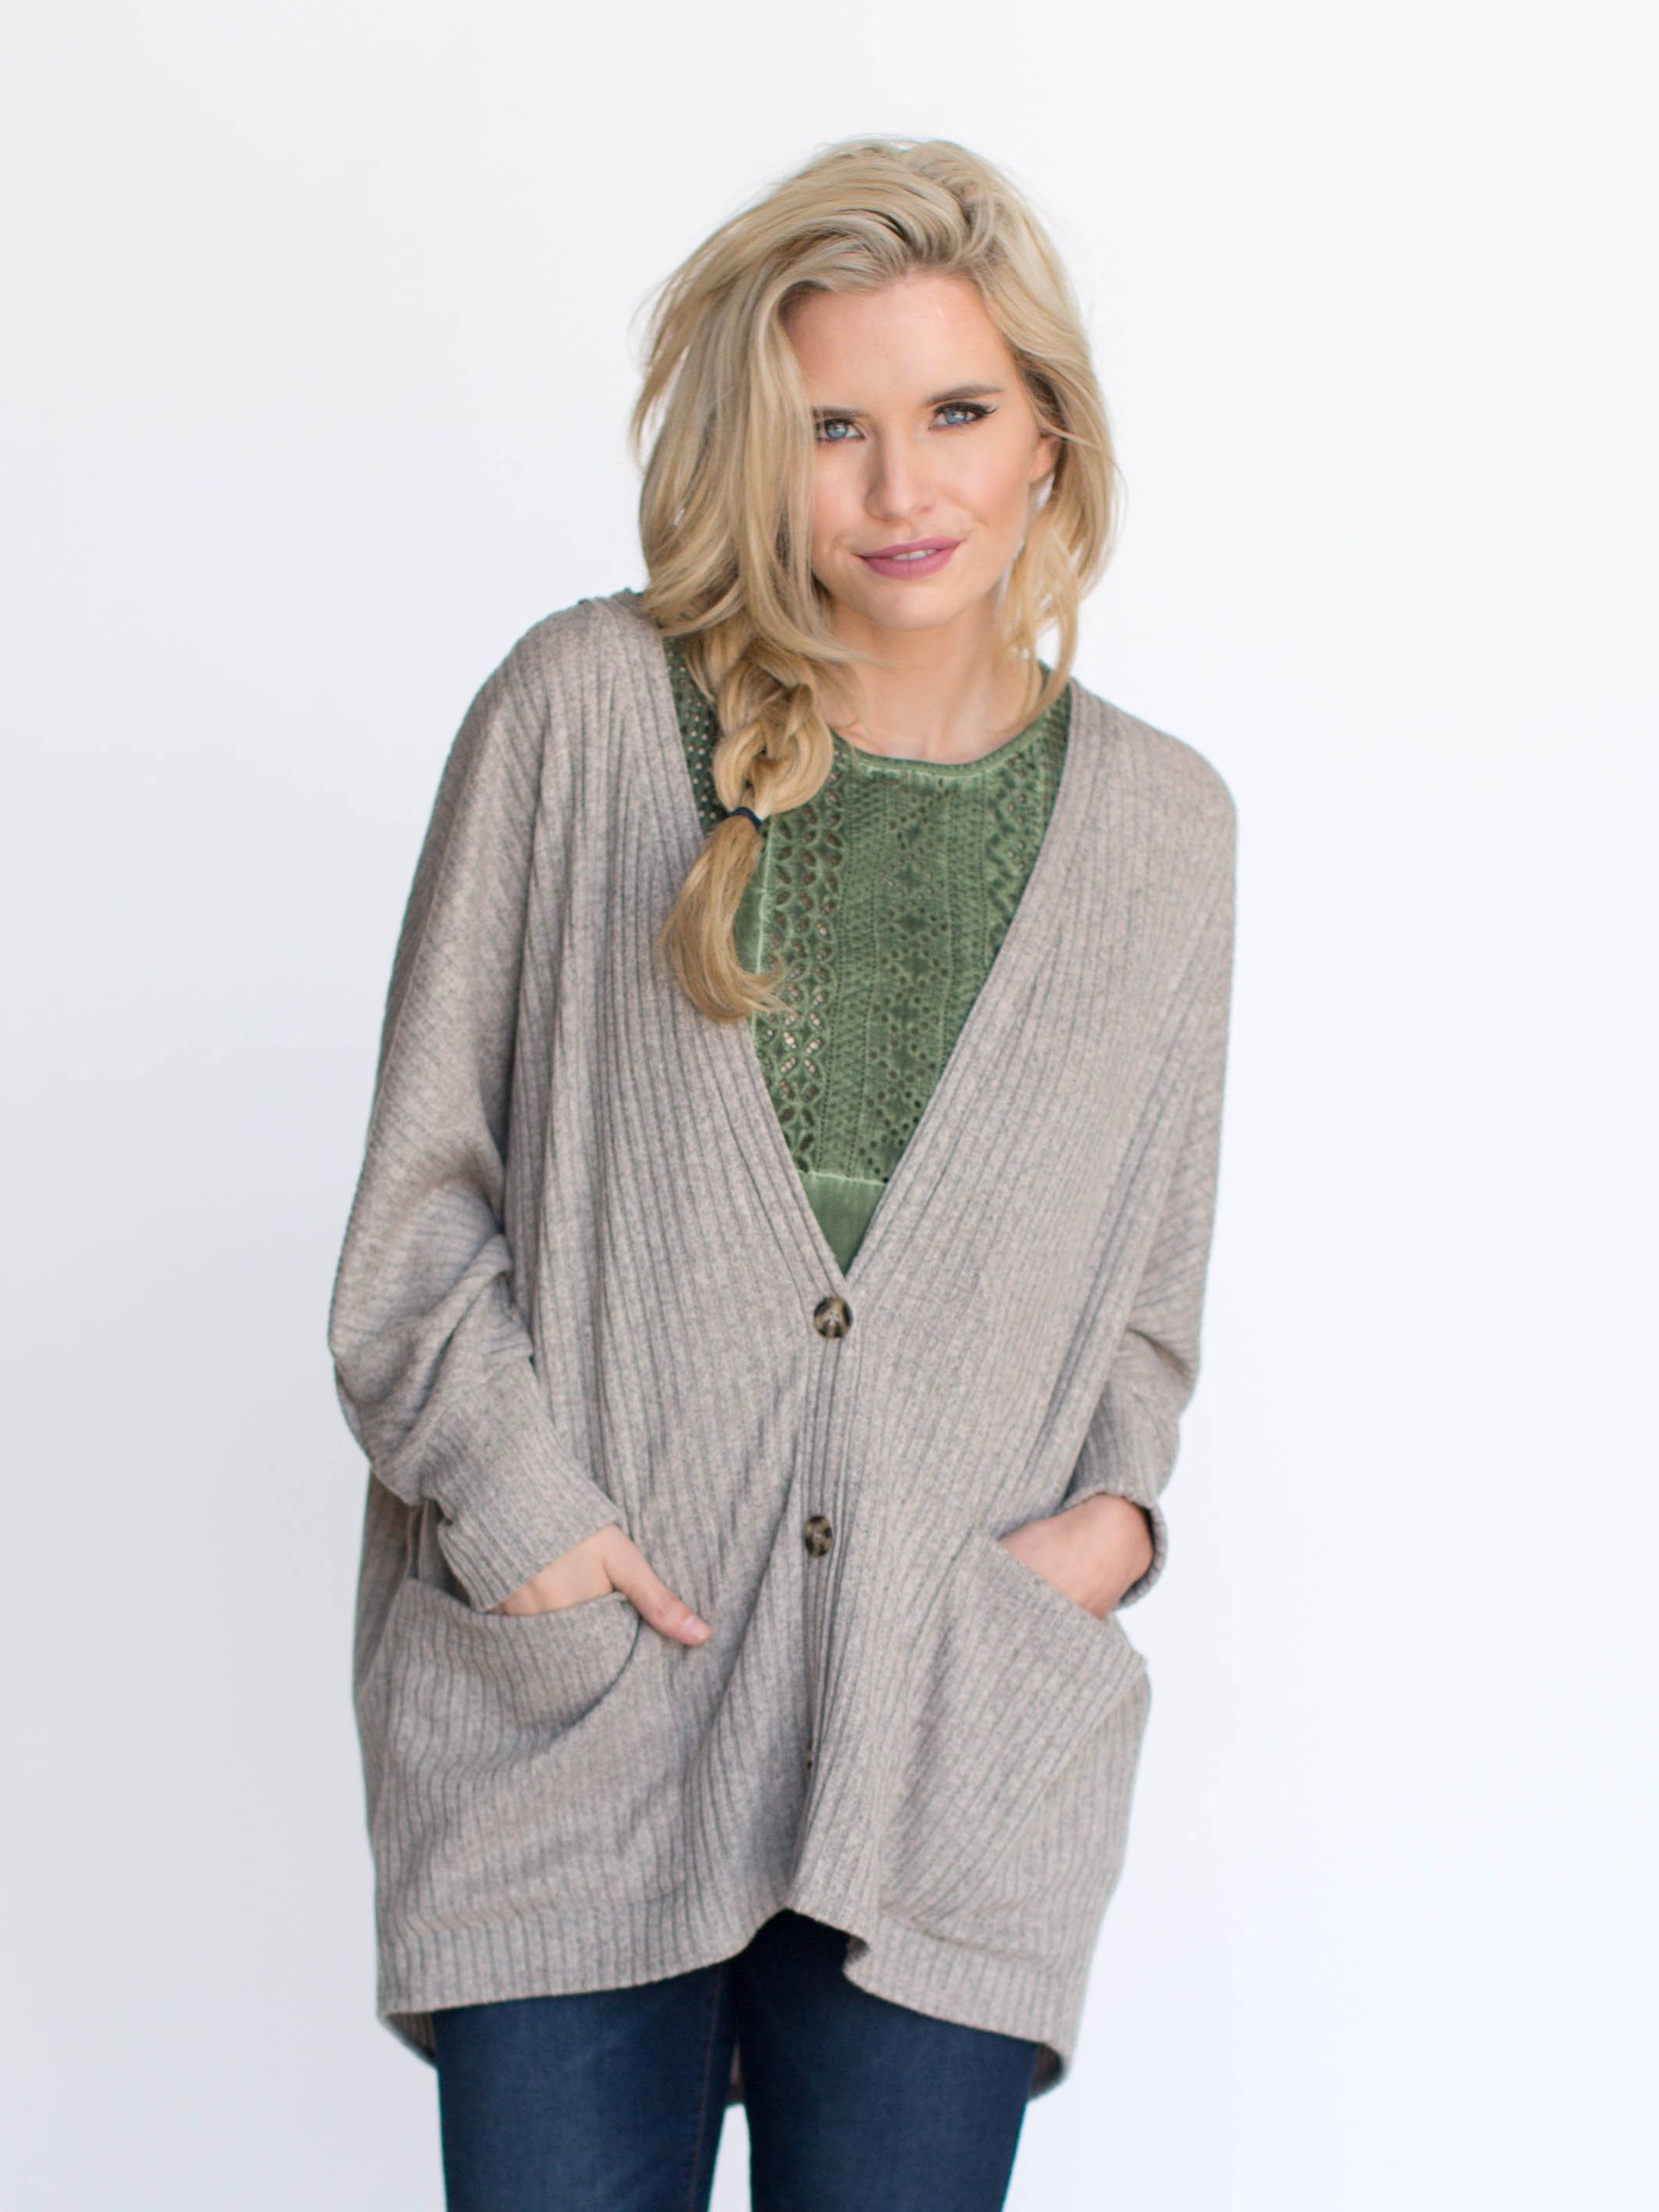 Want: The Most Stylish Grandpa Sweater We've EverSeen